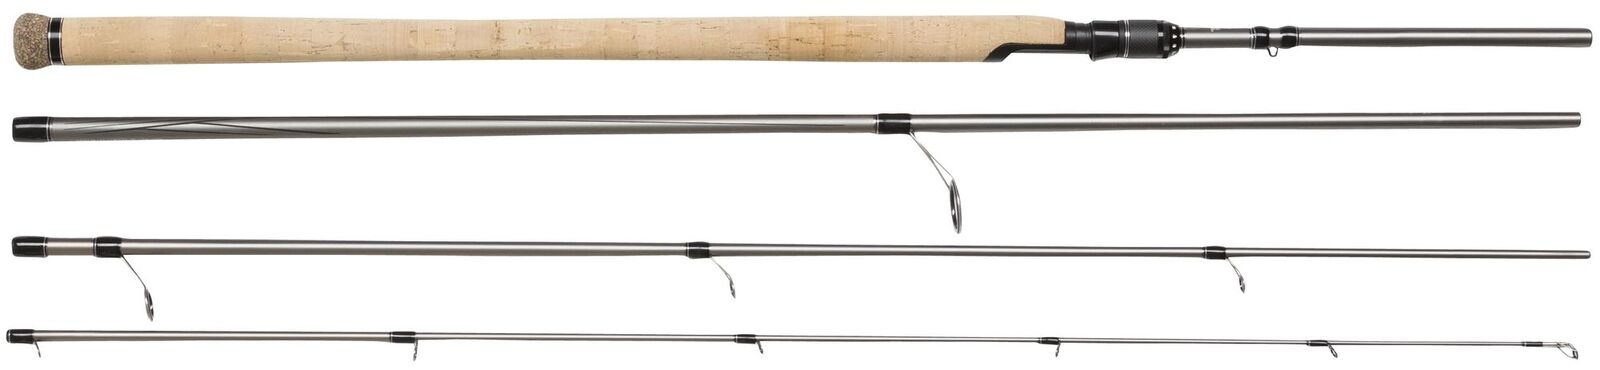 Abu Garcia Verdict Travel 8ft 4-tlg Spinning Rod 2,44m 3-15g Angeln